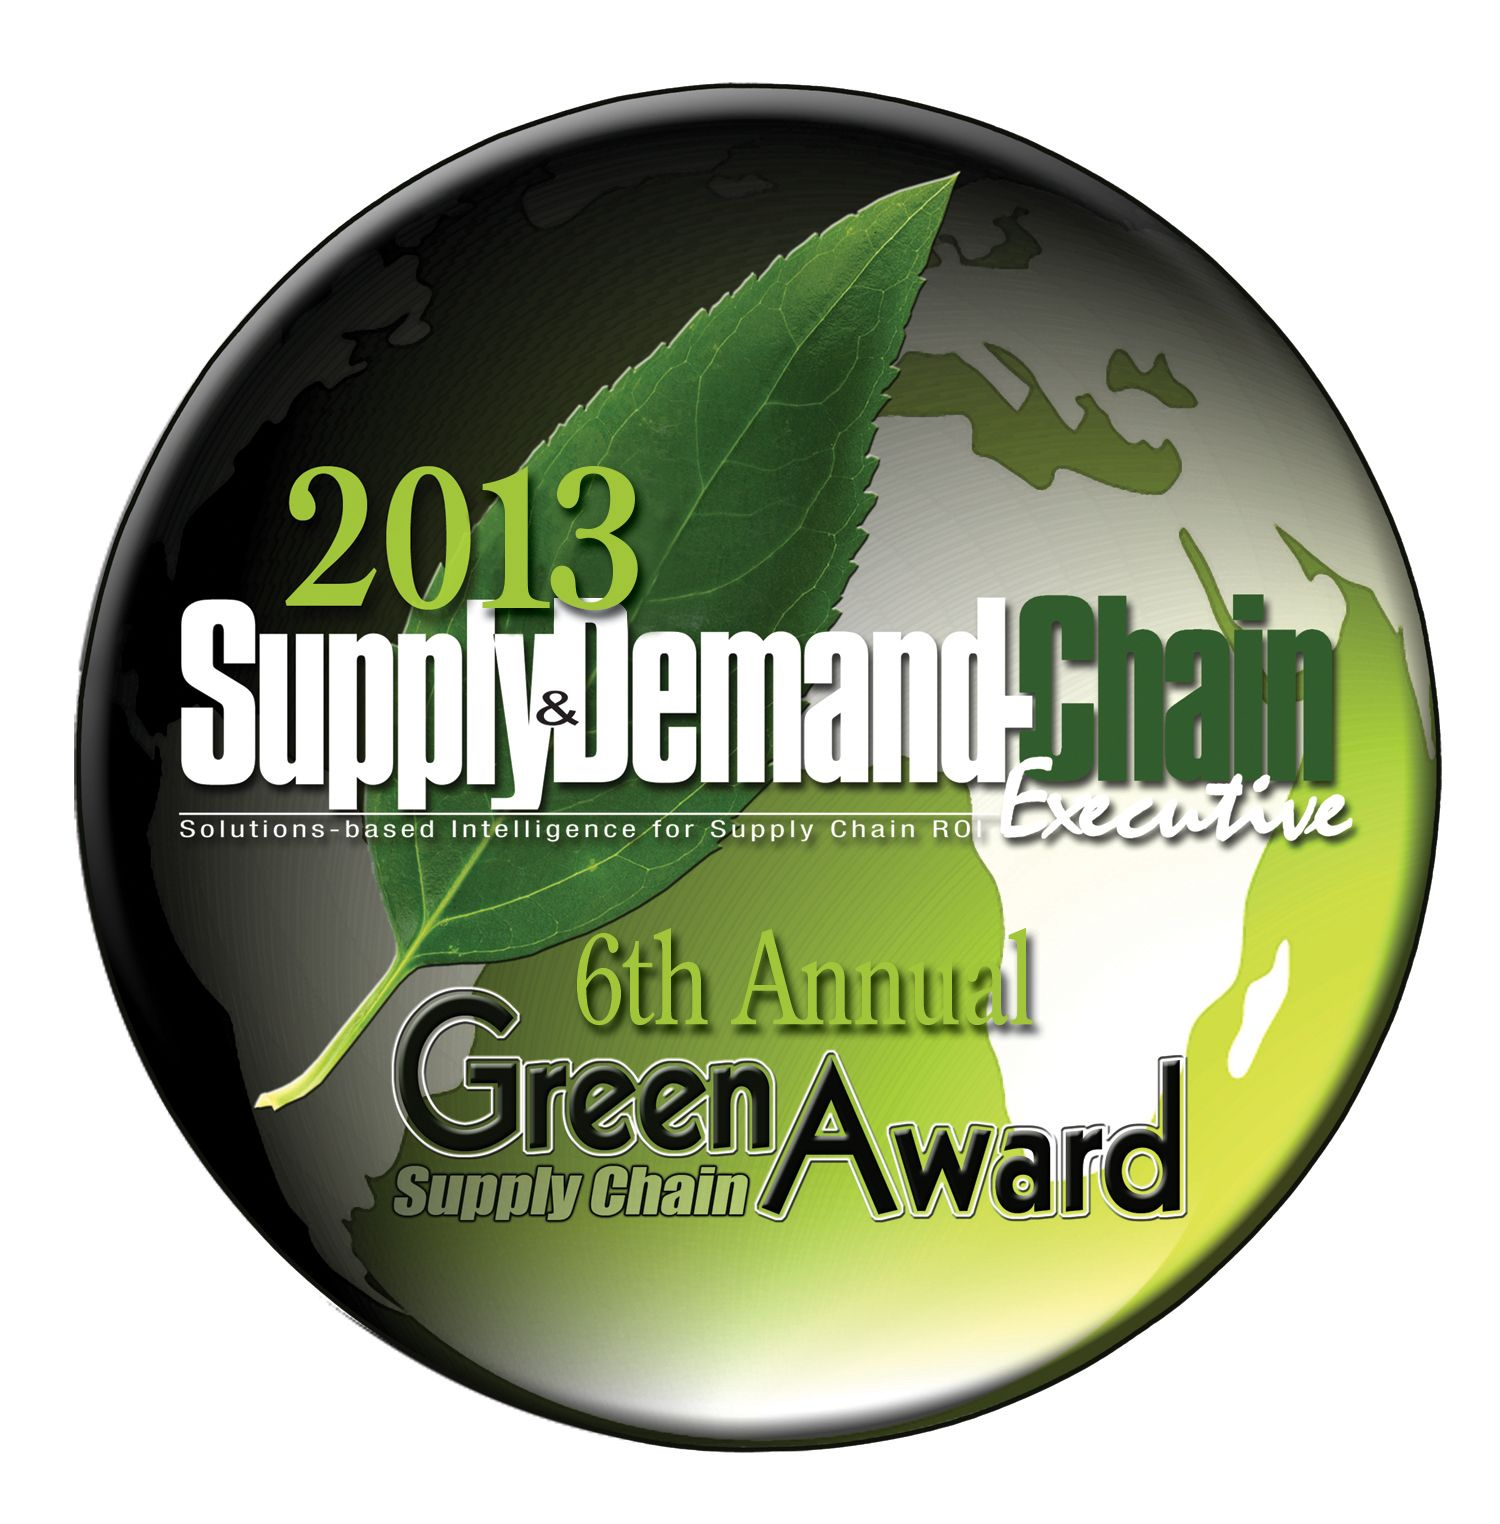 Penske Given Green Award by Supply & Demand Chain Executive